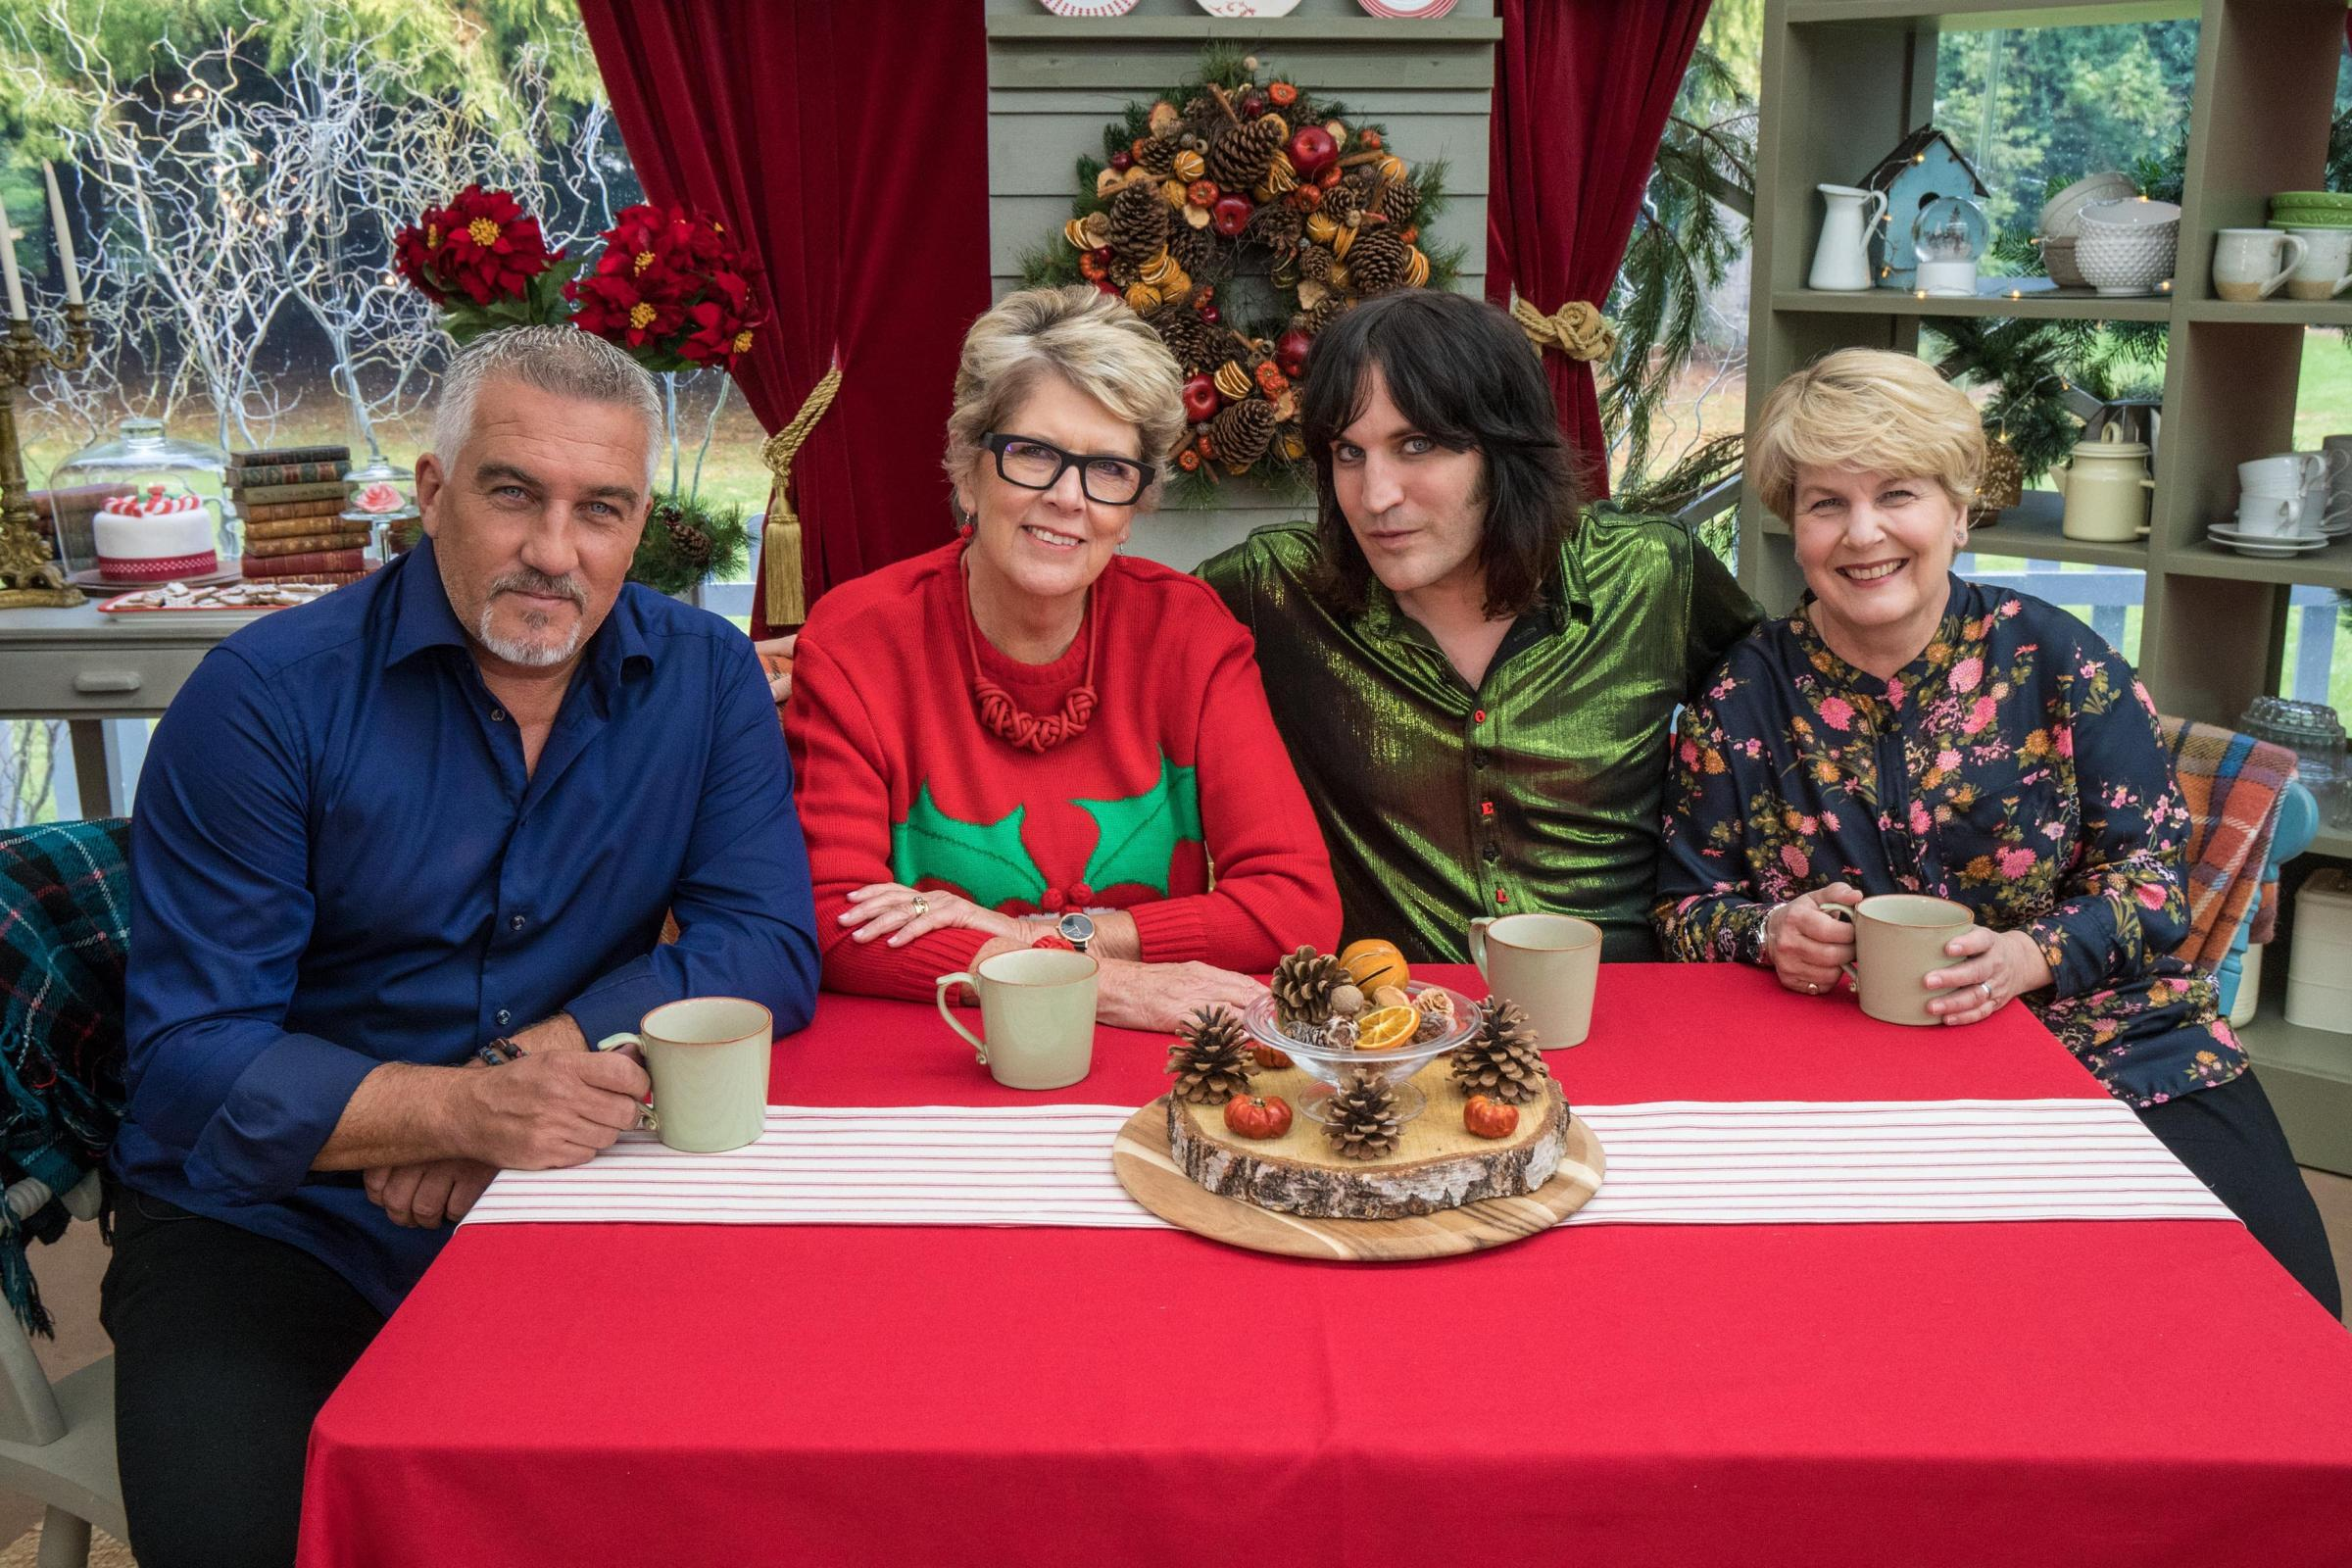 The Great British Bake Off – Paul, Prue, Noel and Sandi (Channel 4)